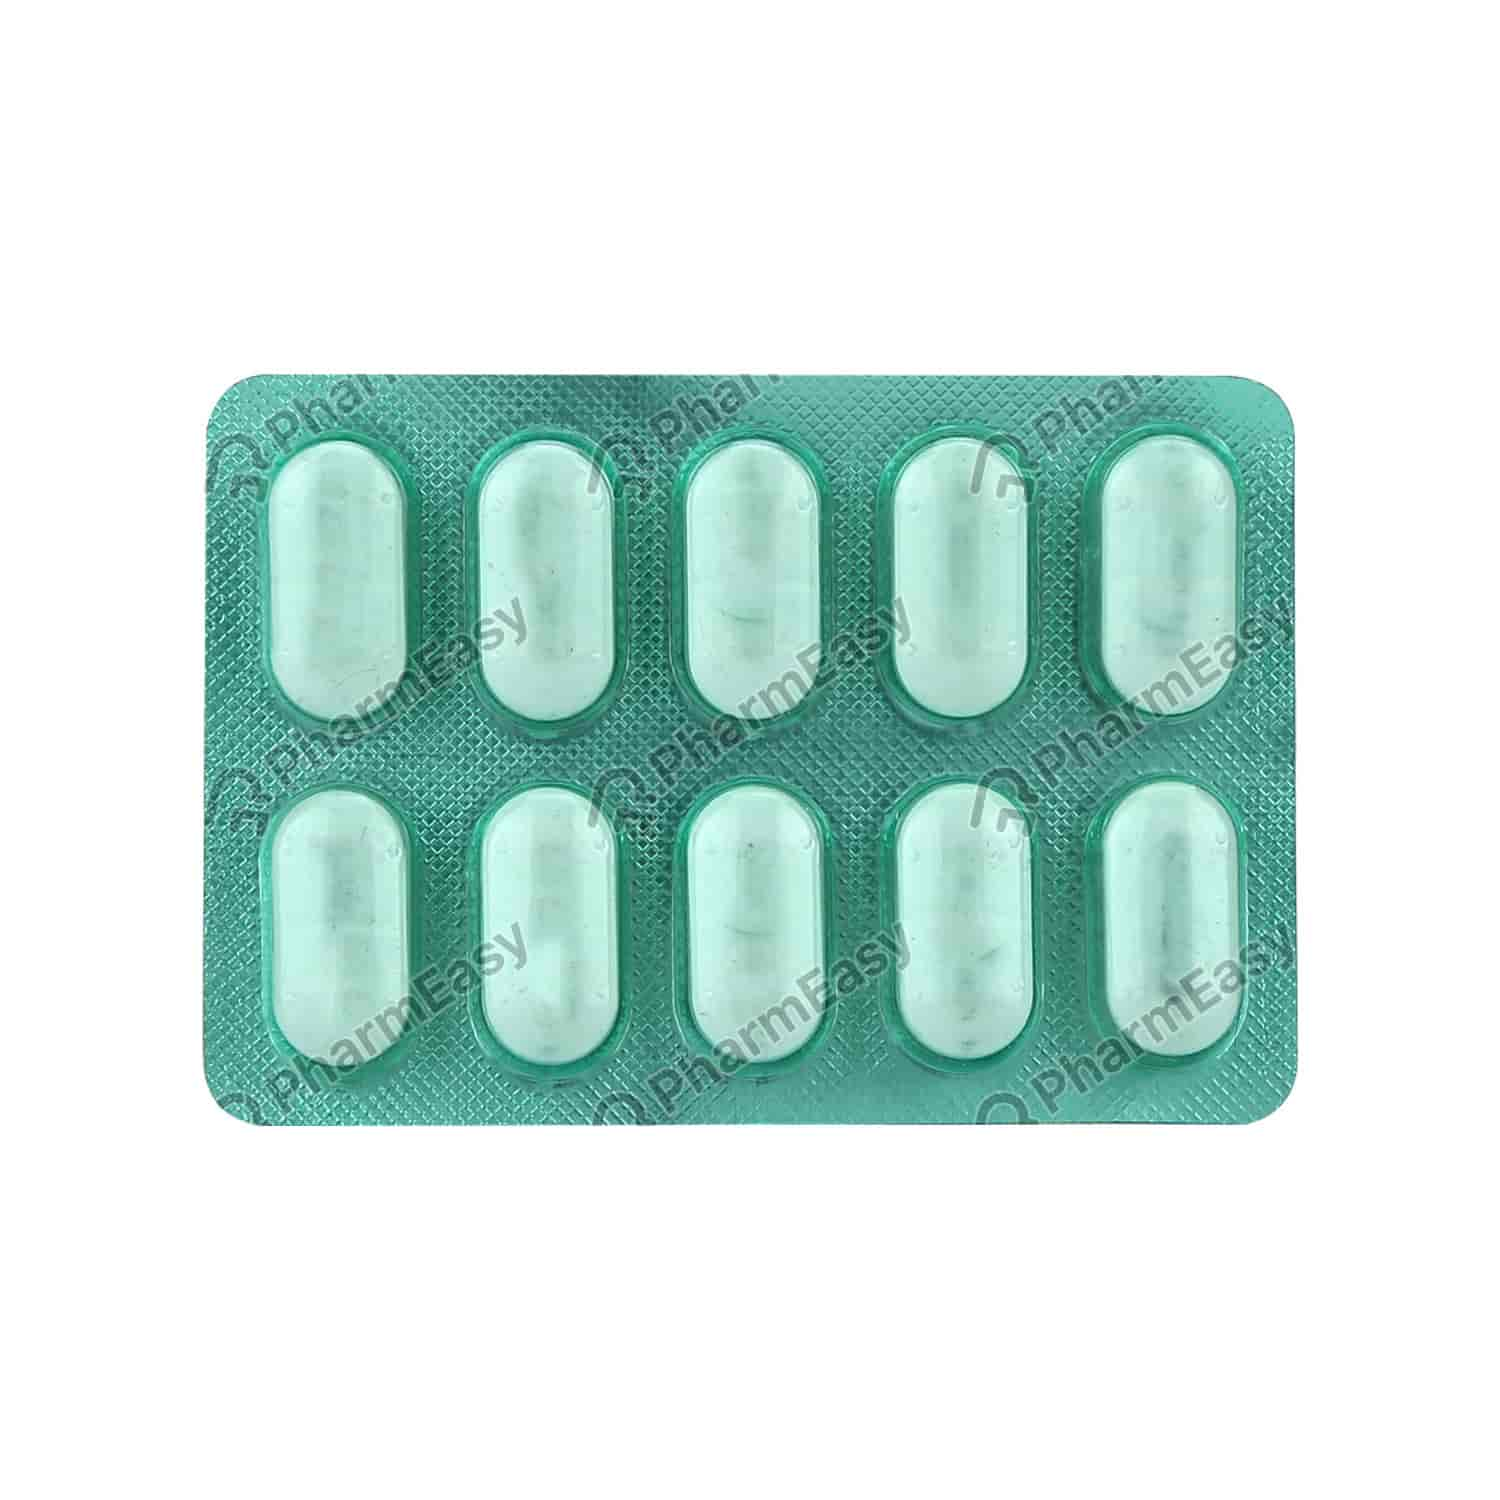 Calcitop 500mg Strip Of 10 Tablets